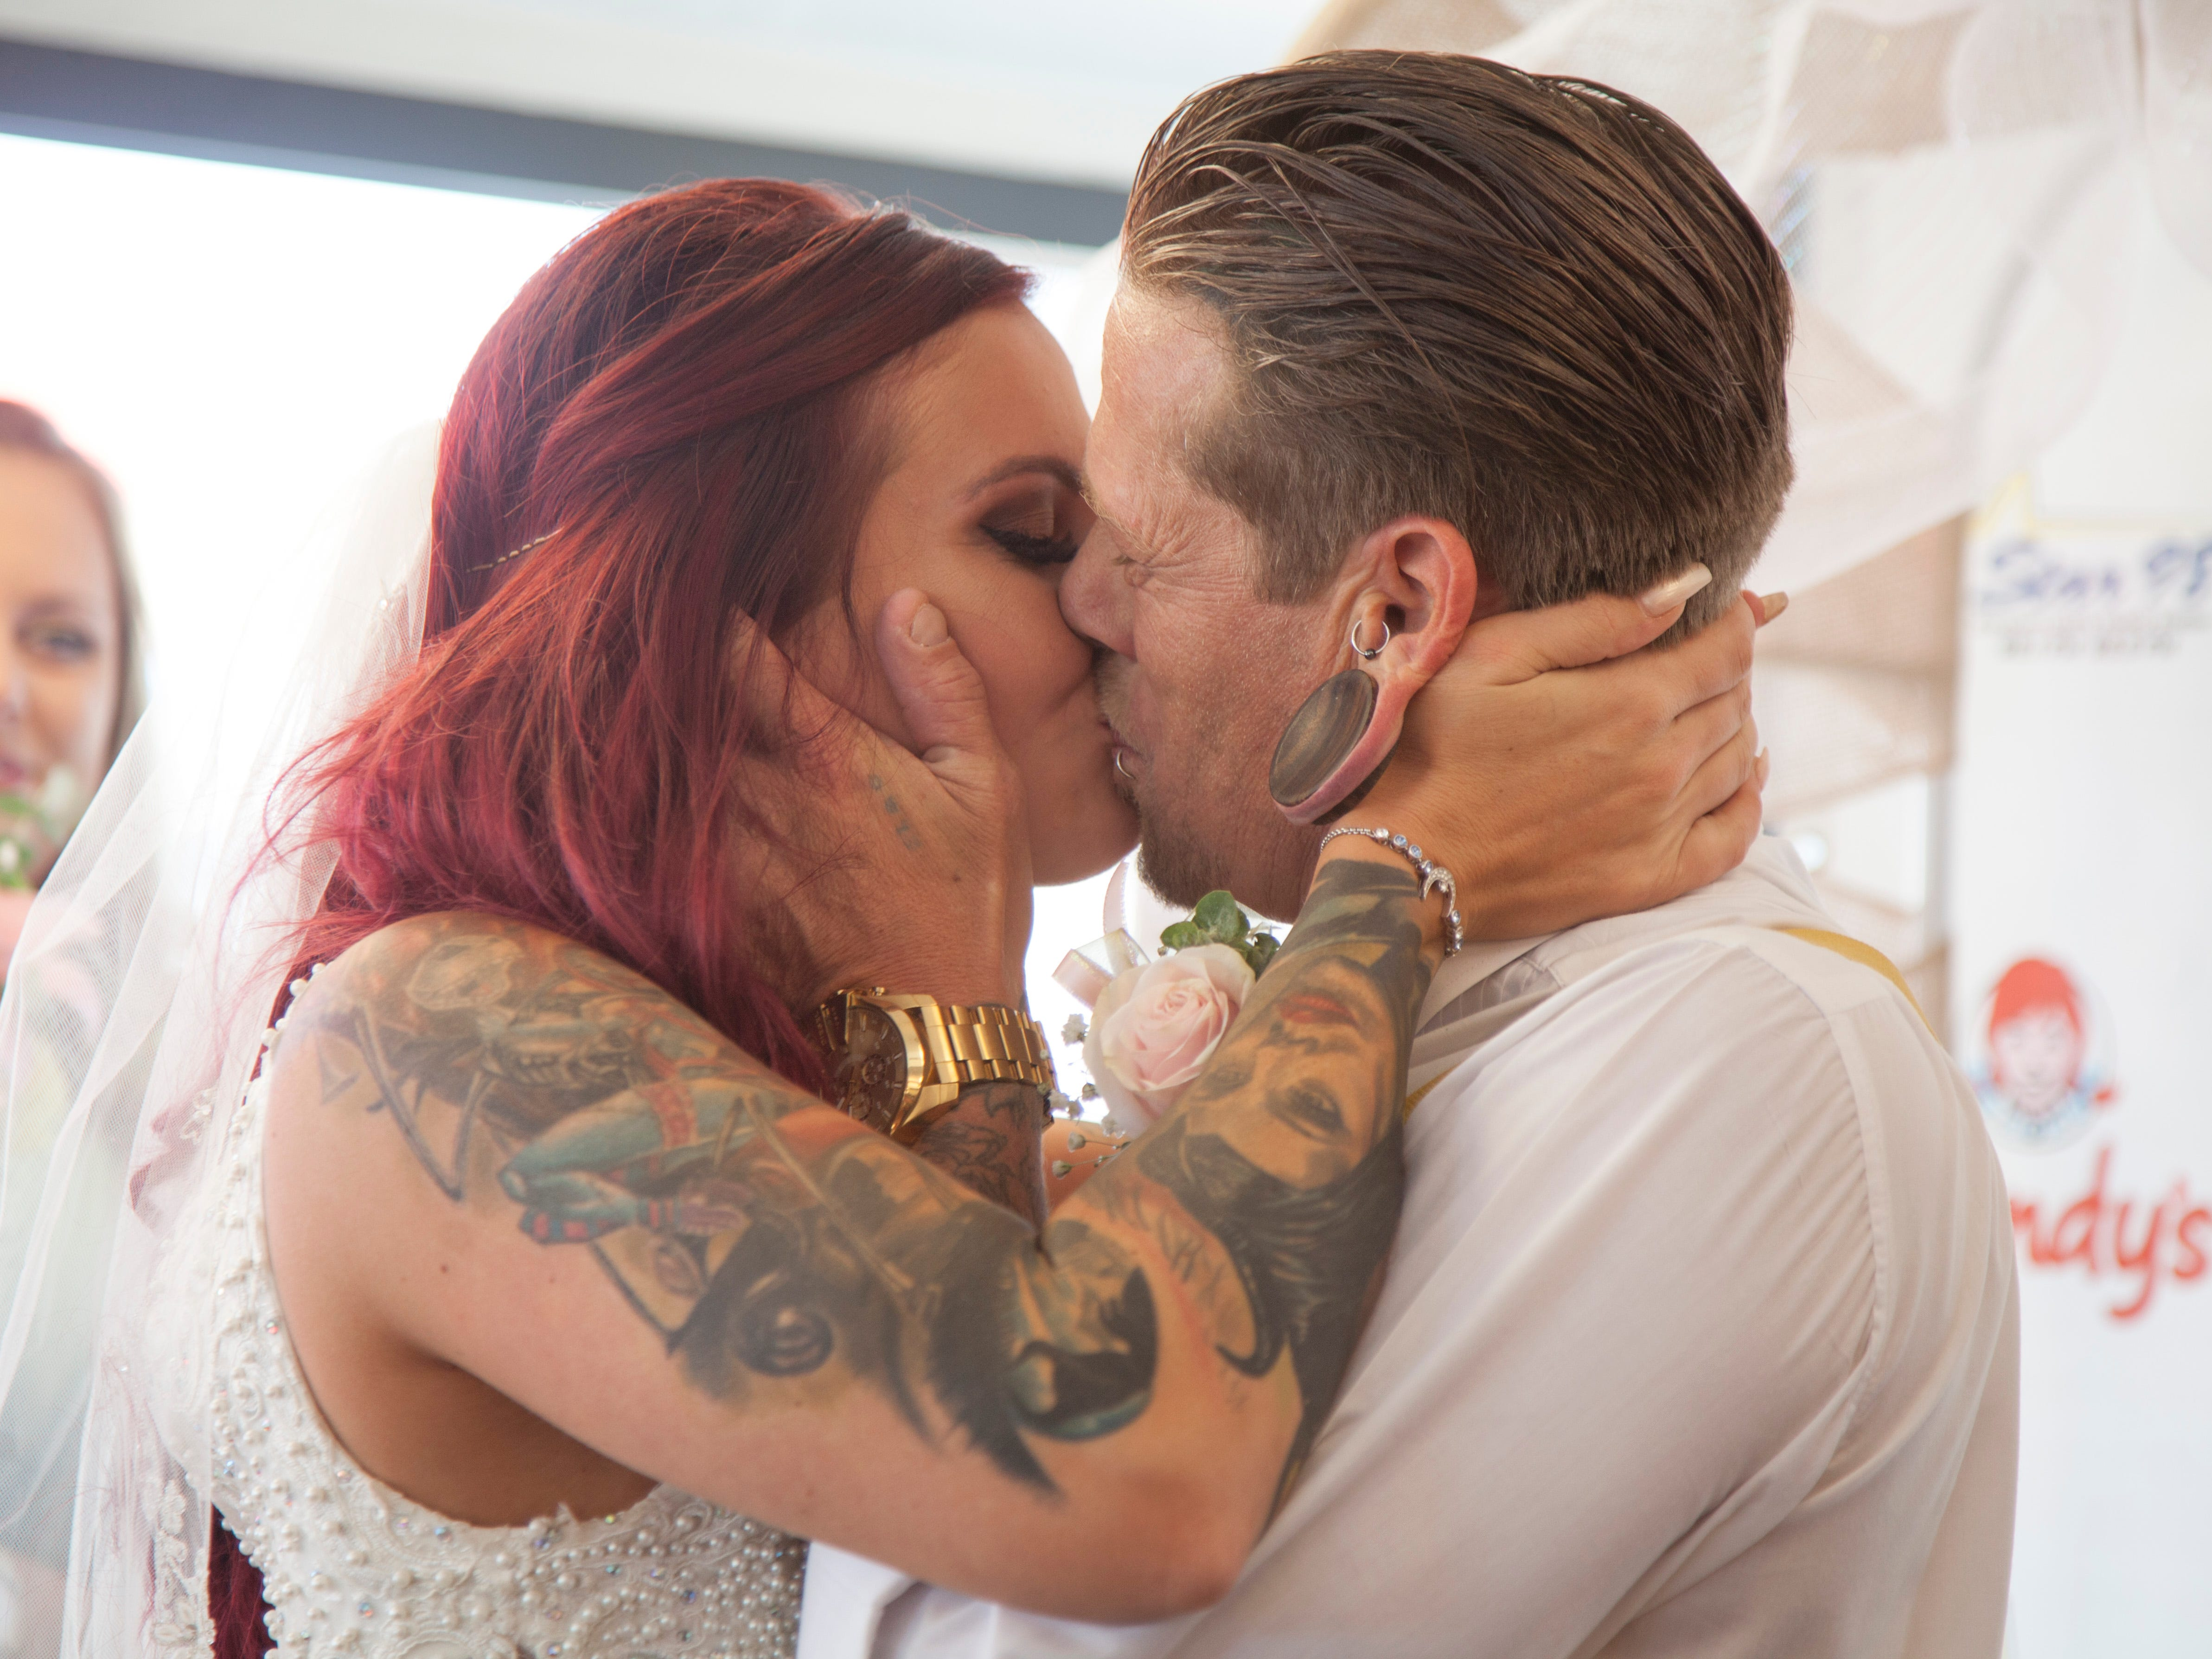 Abram and Jessica Thompson tie the knot at the St. George Boulevard Wendy's Restaurant Friday, June 22, 2018.